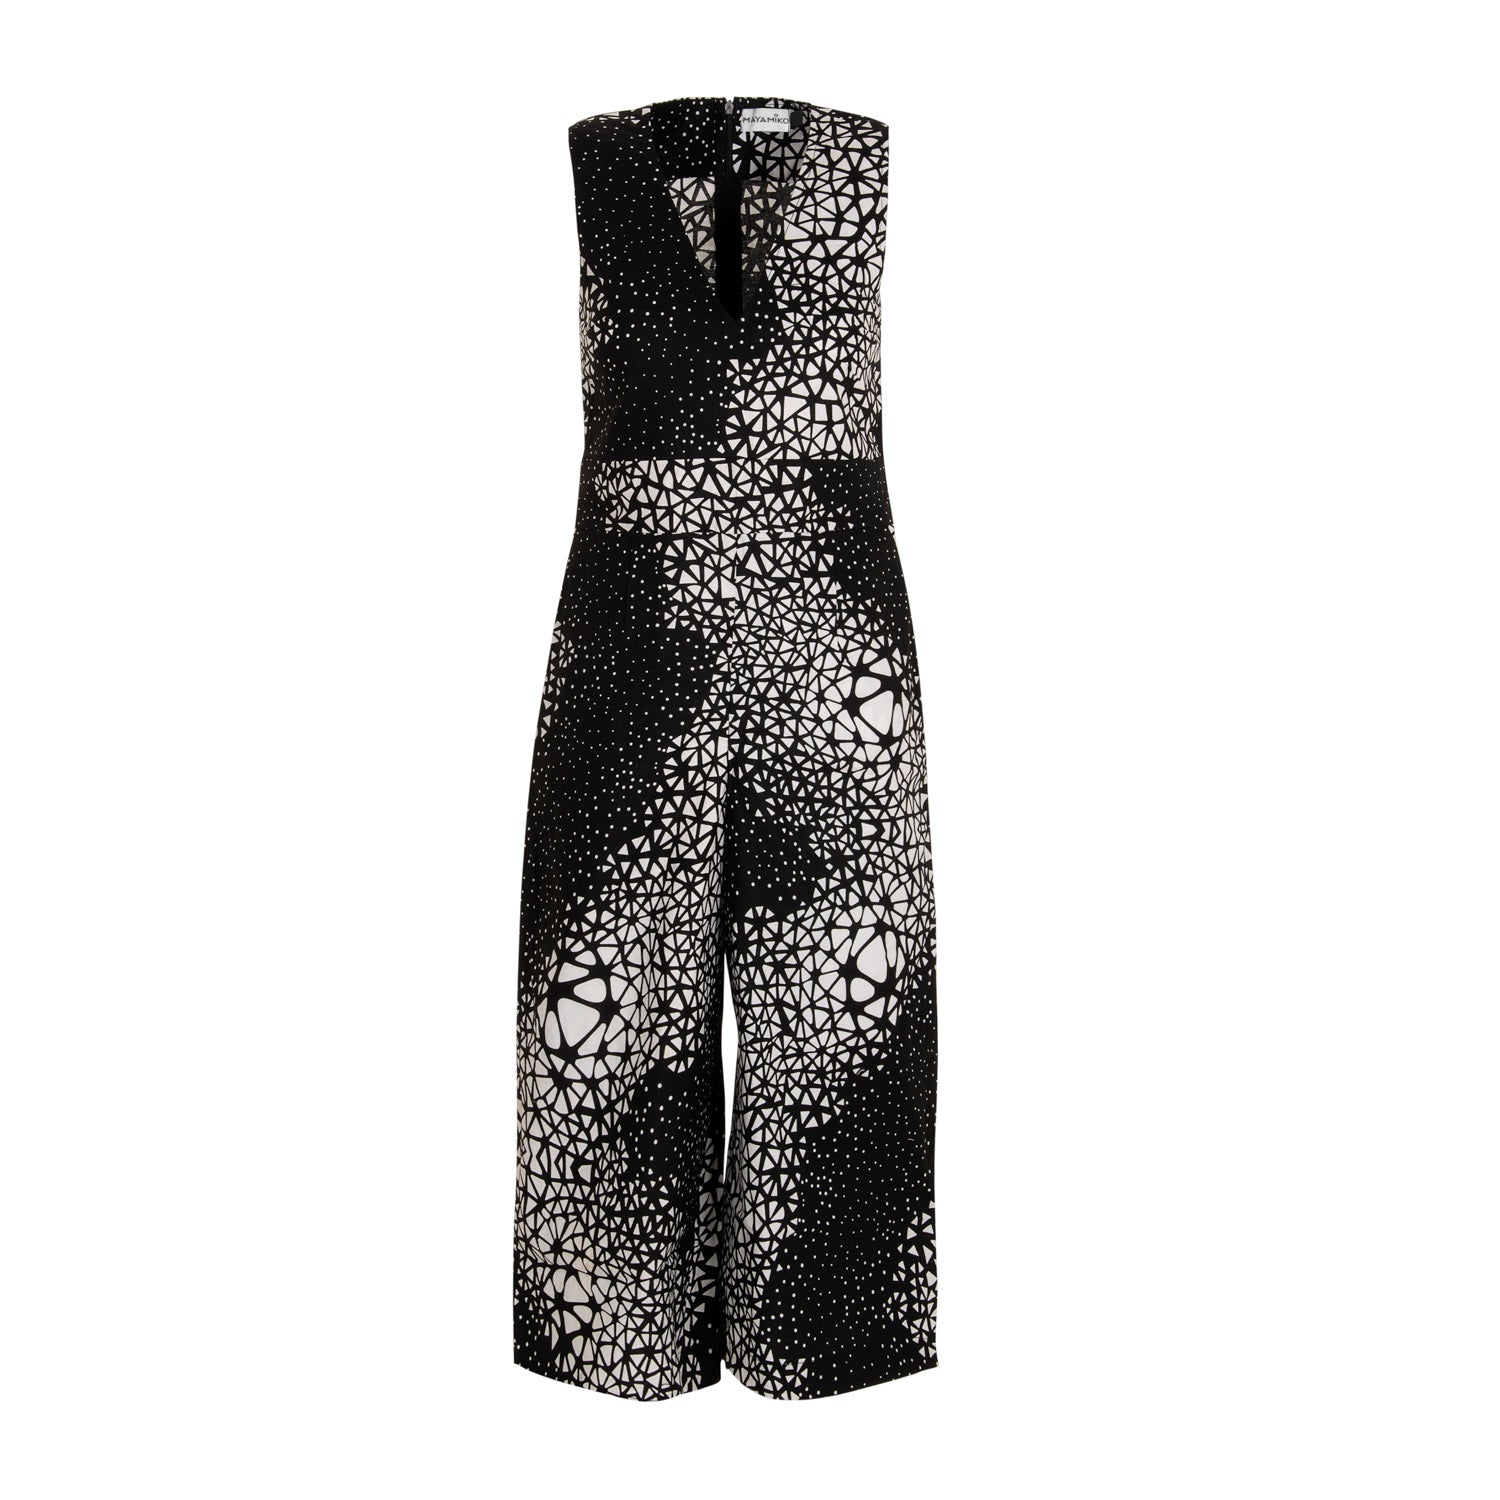 7eb94ff3ca Martina Jumpsuit in Black and White Abstract Print